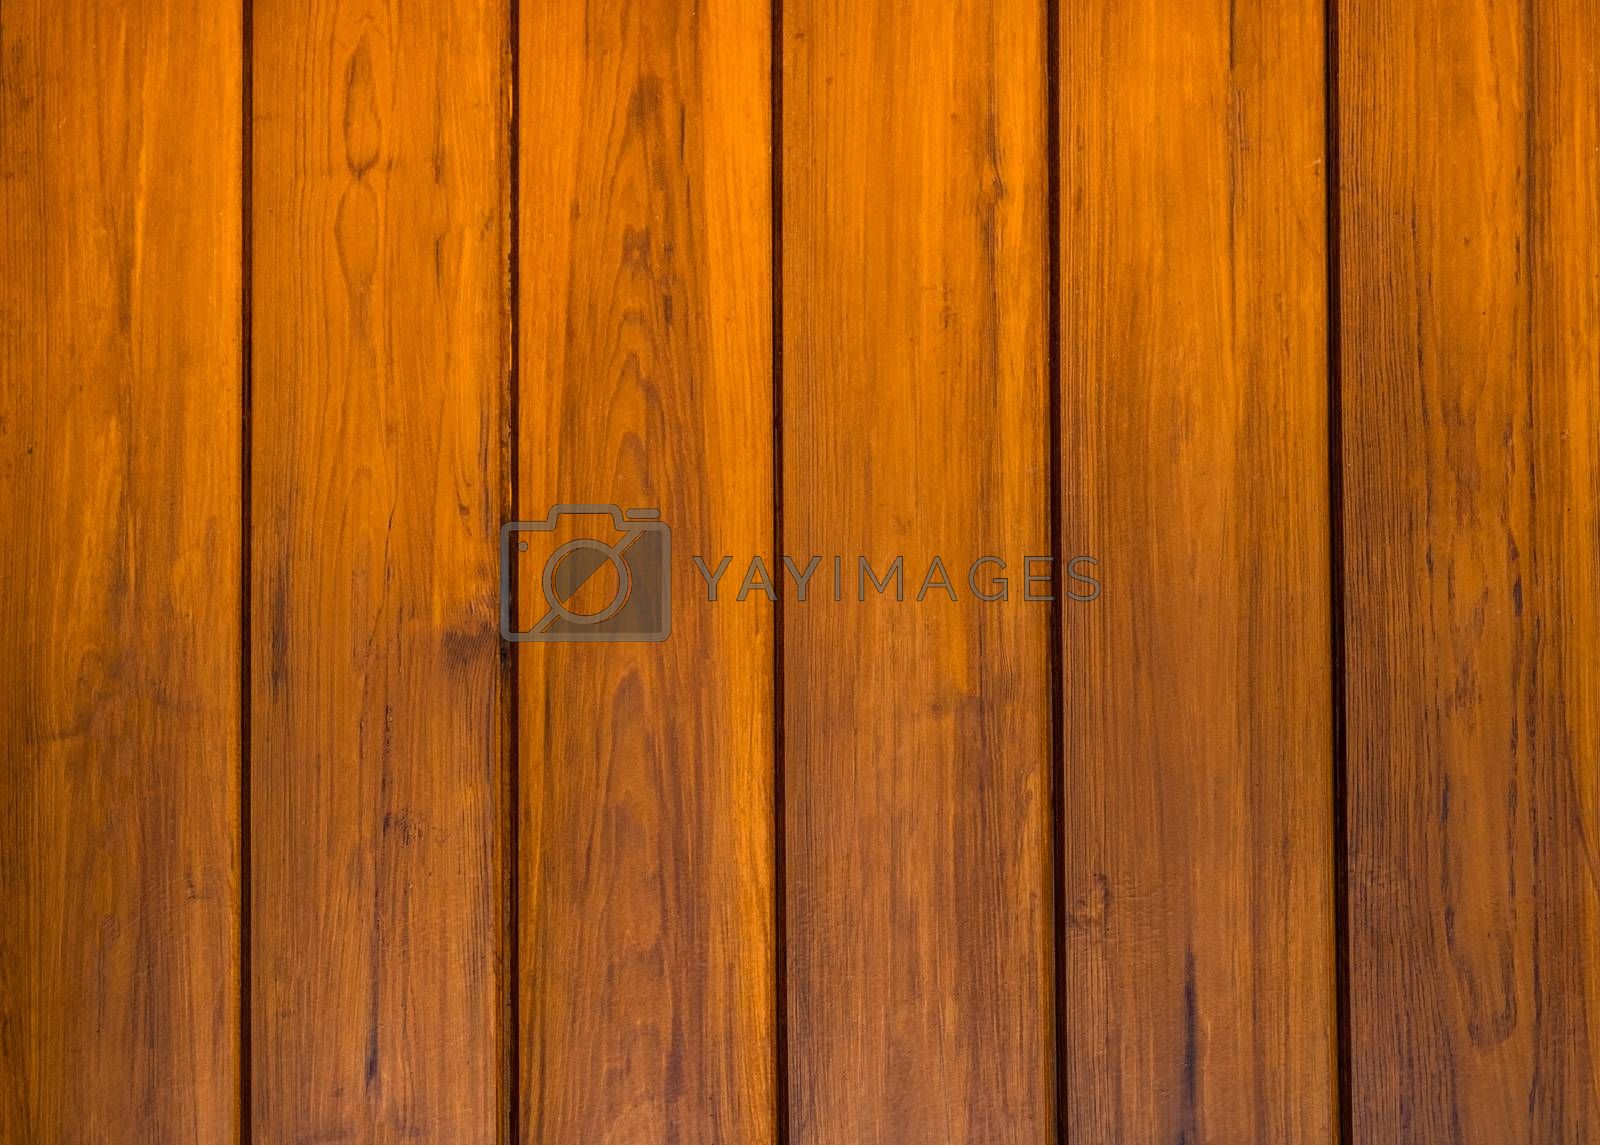 Wooden background with vertical ribbons in brown tones